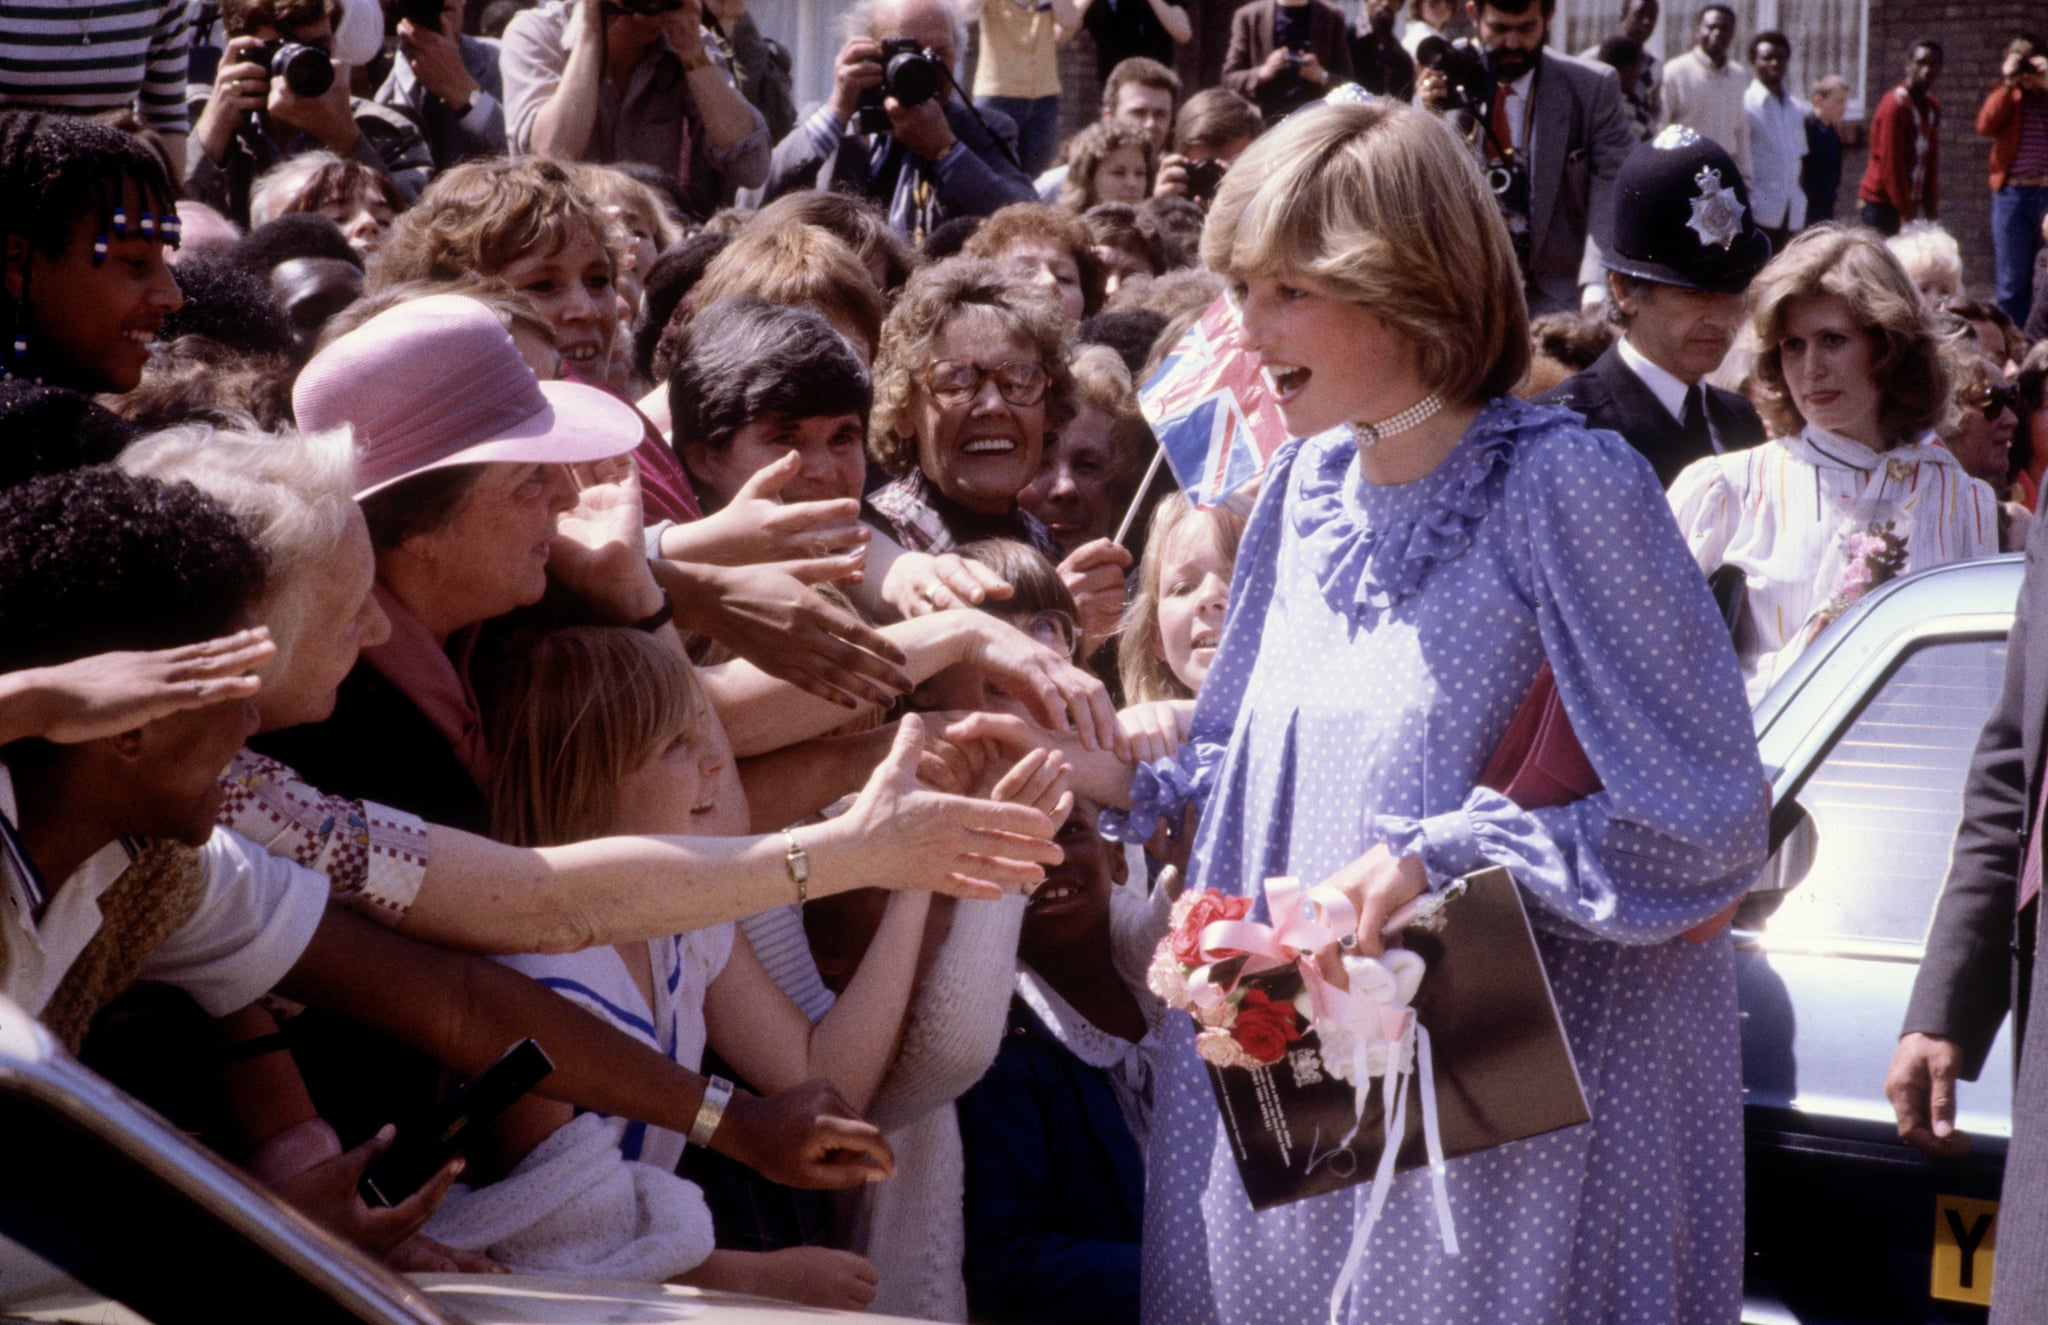 Princess Diana held hands with onlookers while opening a community center in London in May 1982 — her last official engagement before Prince William's birth.